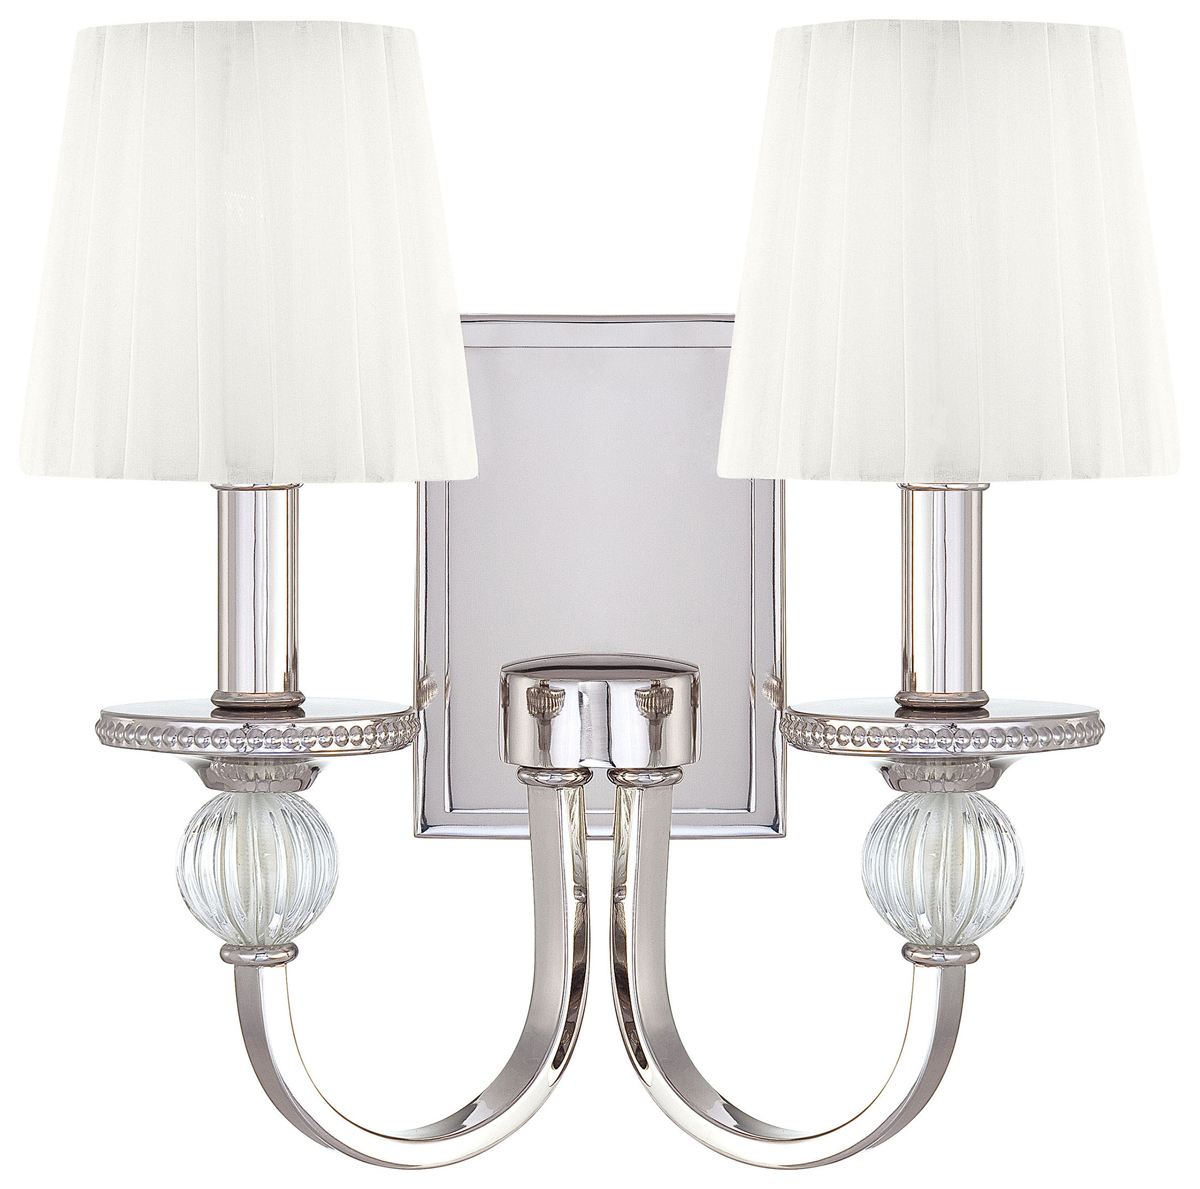 Metropolitan Lighting (N2661-613) Aise 2 Light Wall Sconce shown in Polished Nickel with White ...